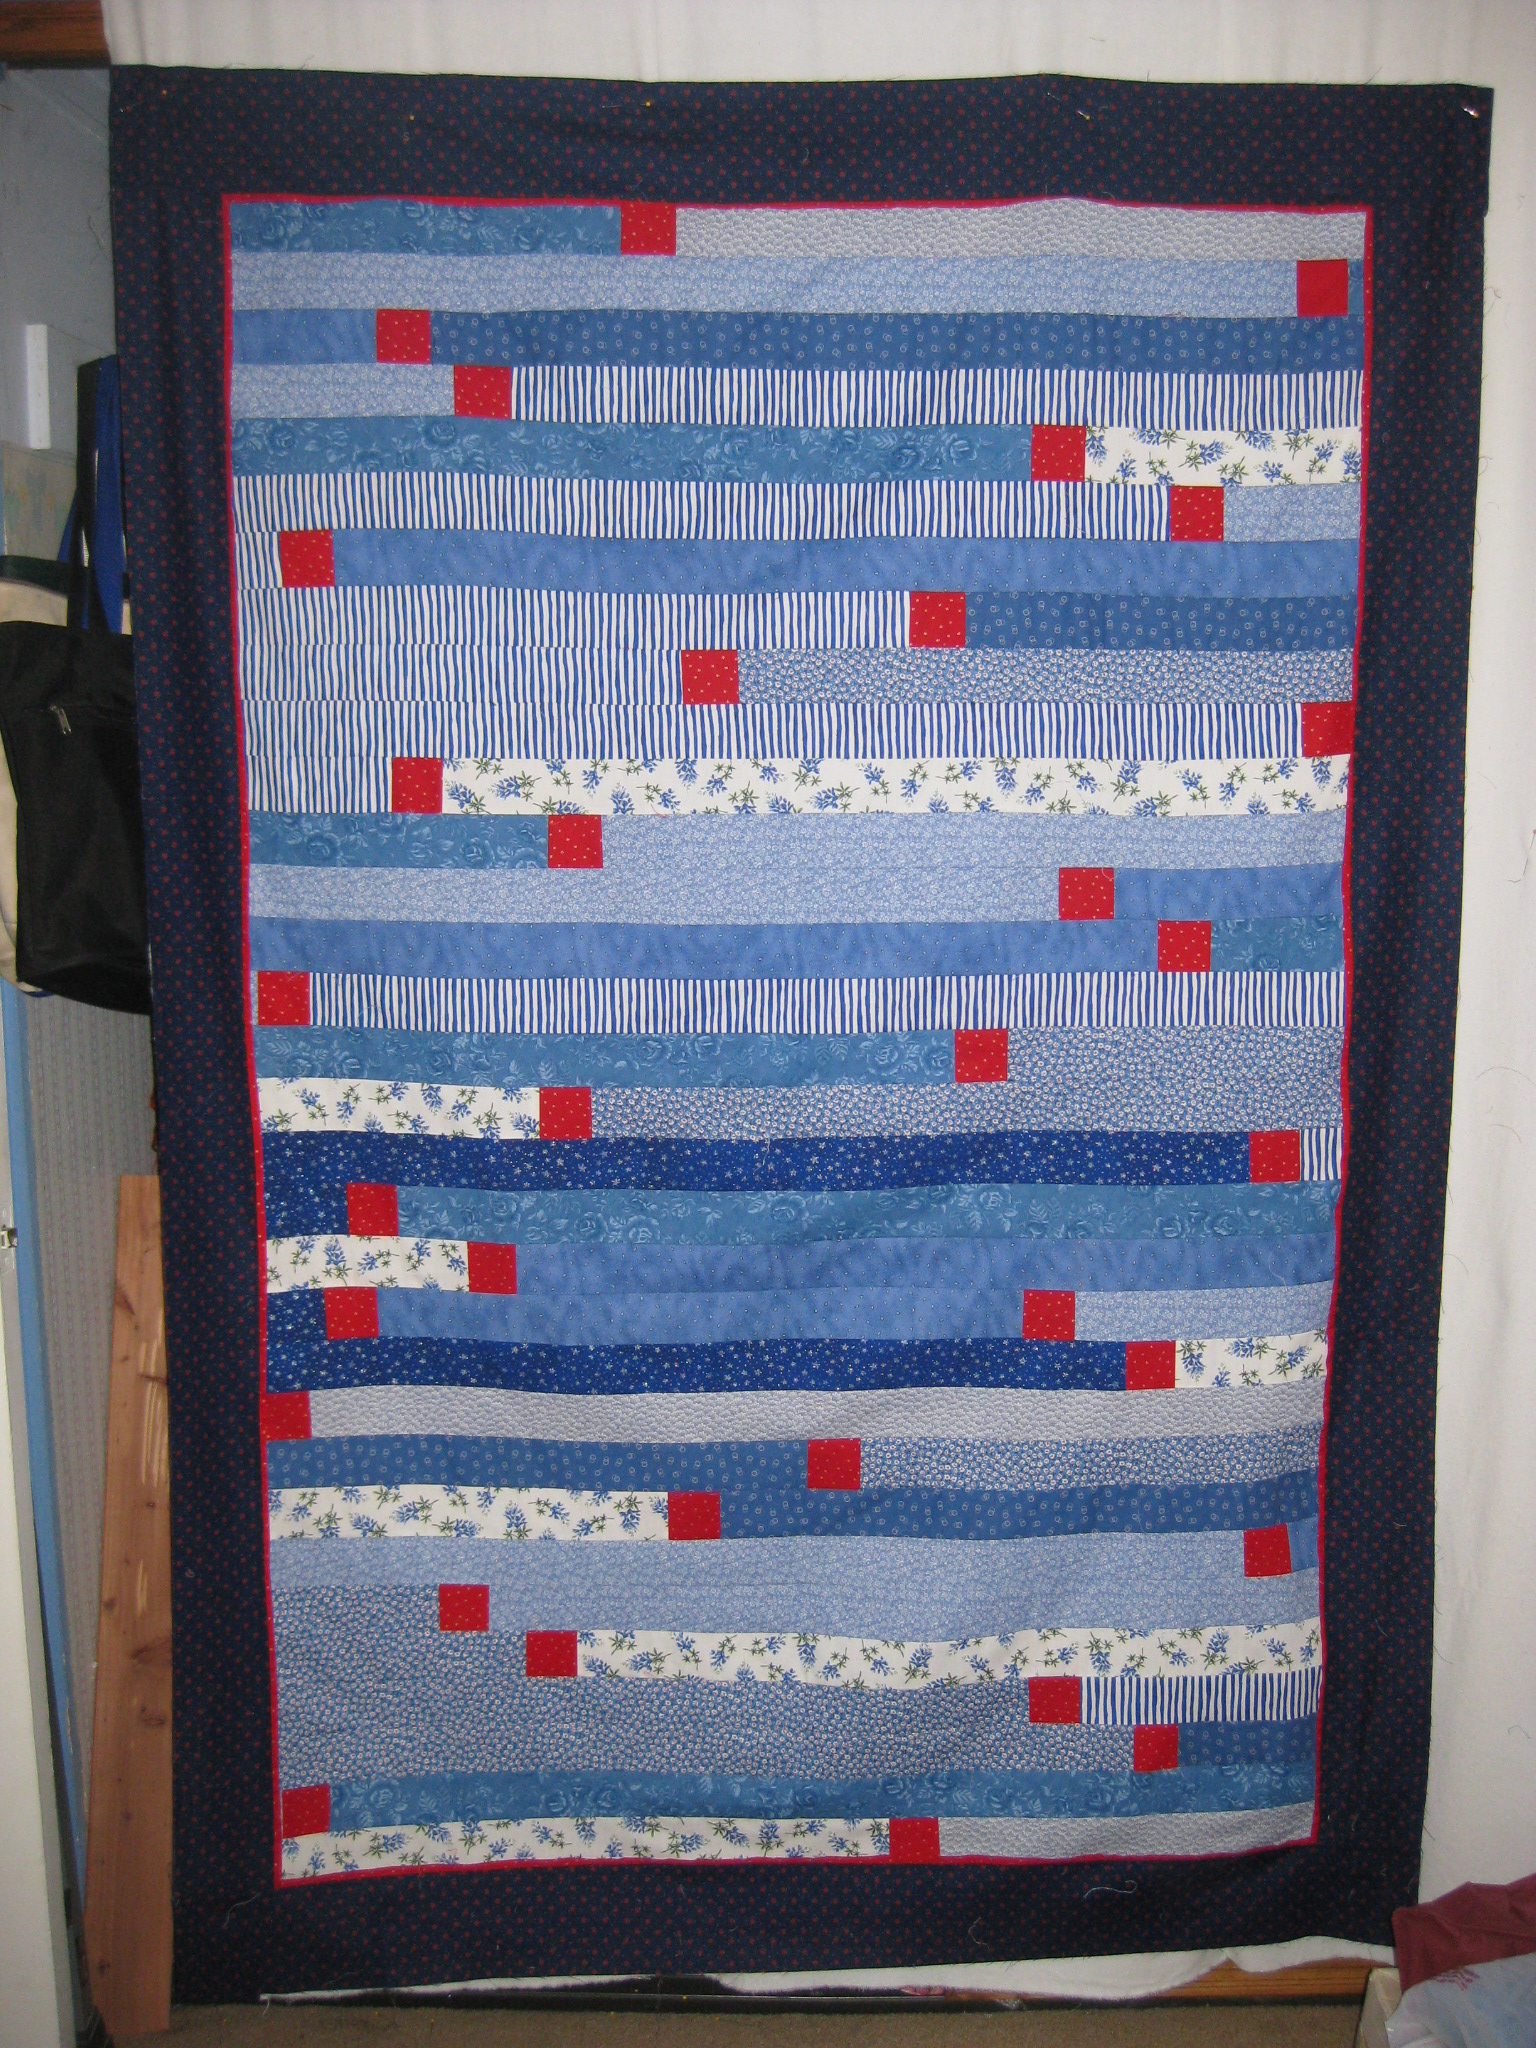 Jelly Roll Race (1600) Quilt - Lyn Brown's Quilting Blog : jelly roll race quilt pattern - Adamdwight.com